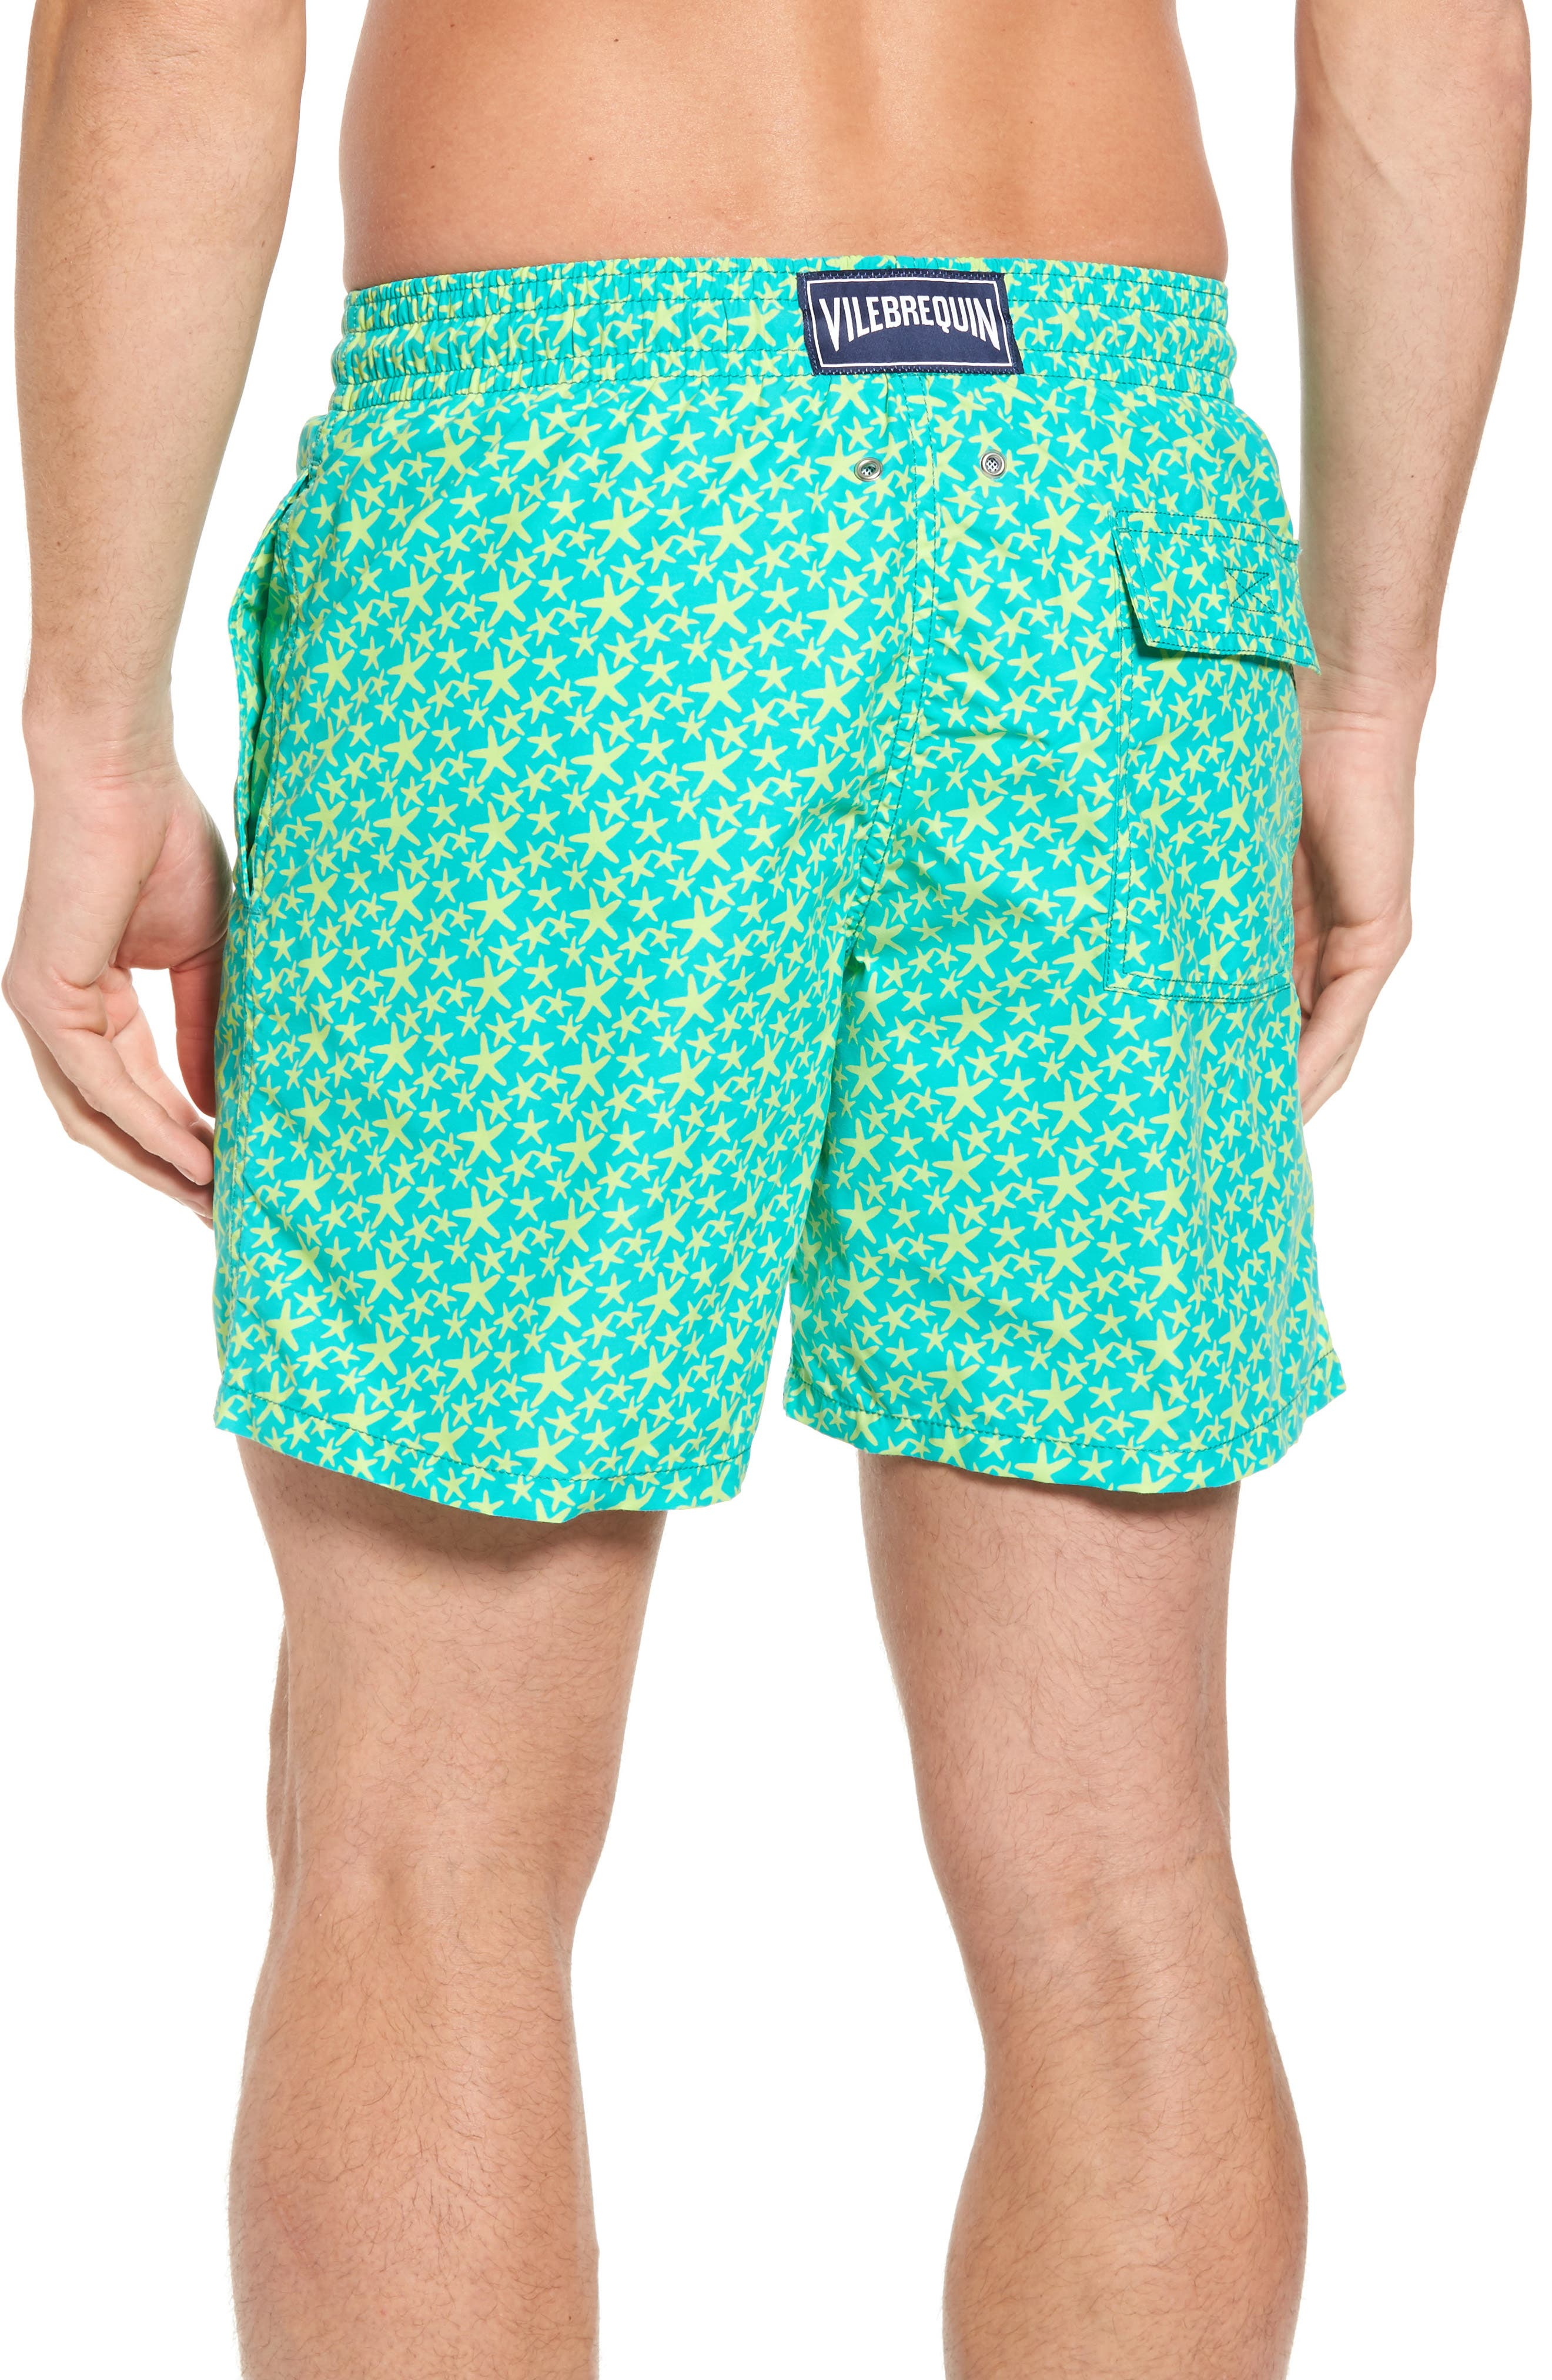 Micro Starlets Swim Trunks,                             Alternate thumbnail 2, color,                             348